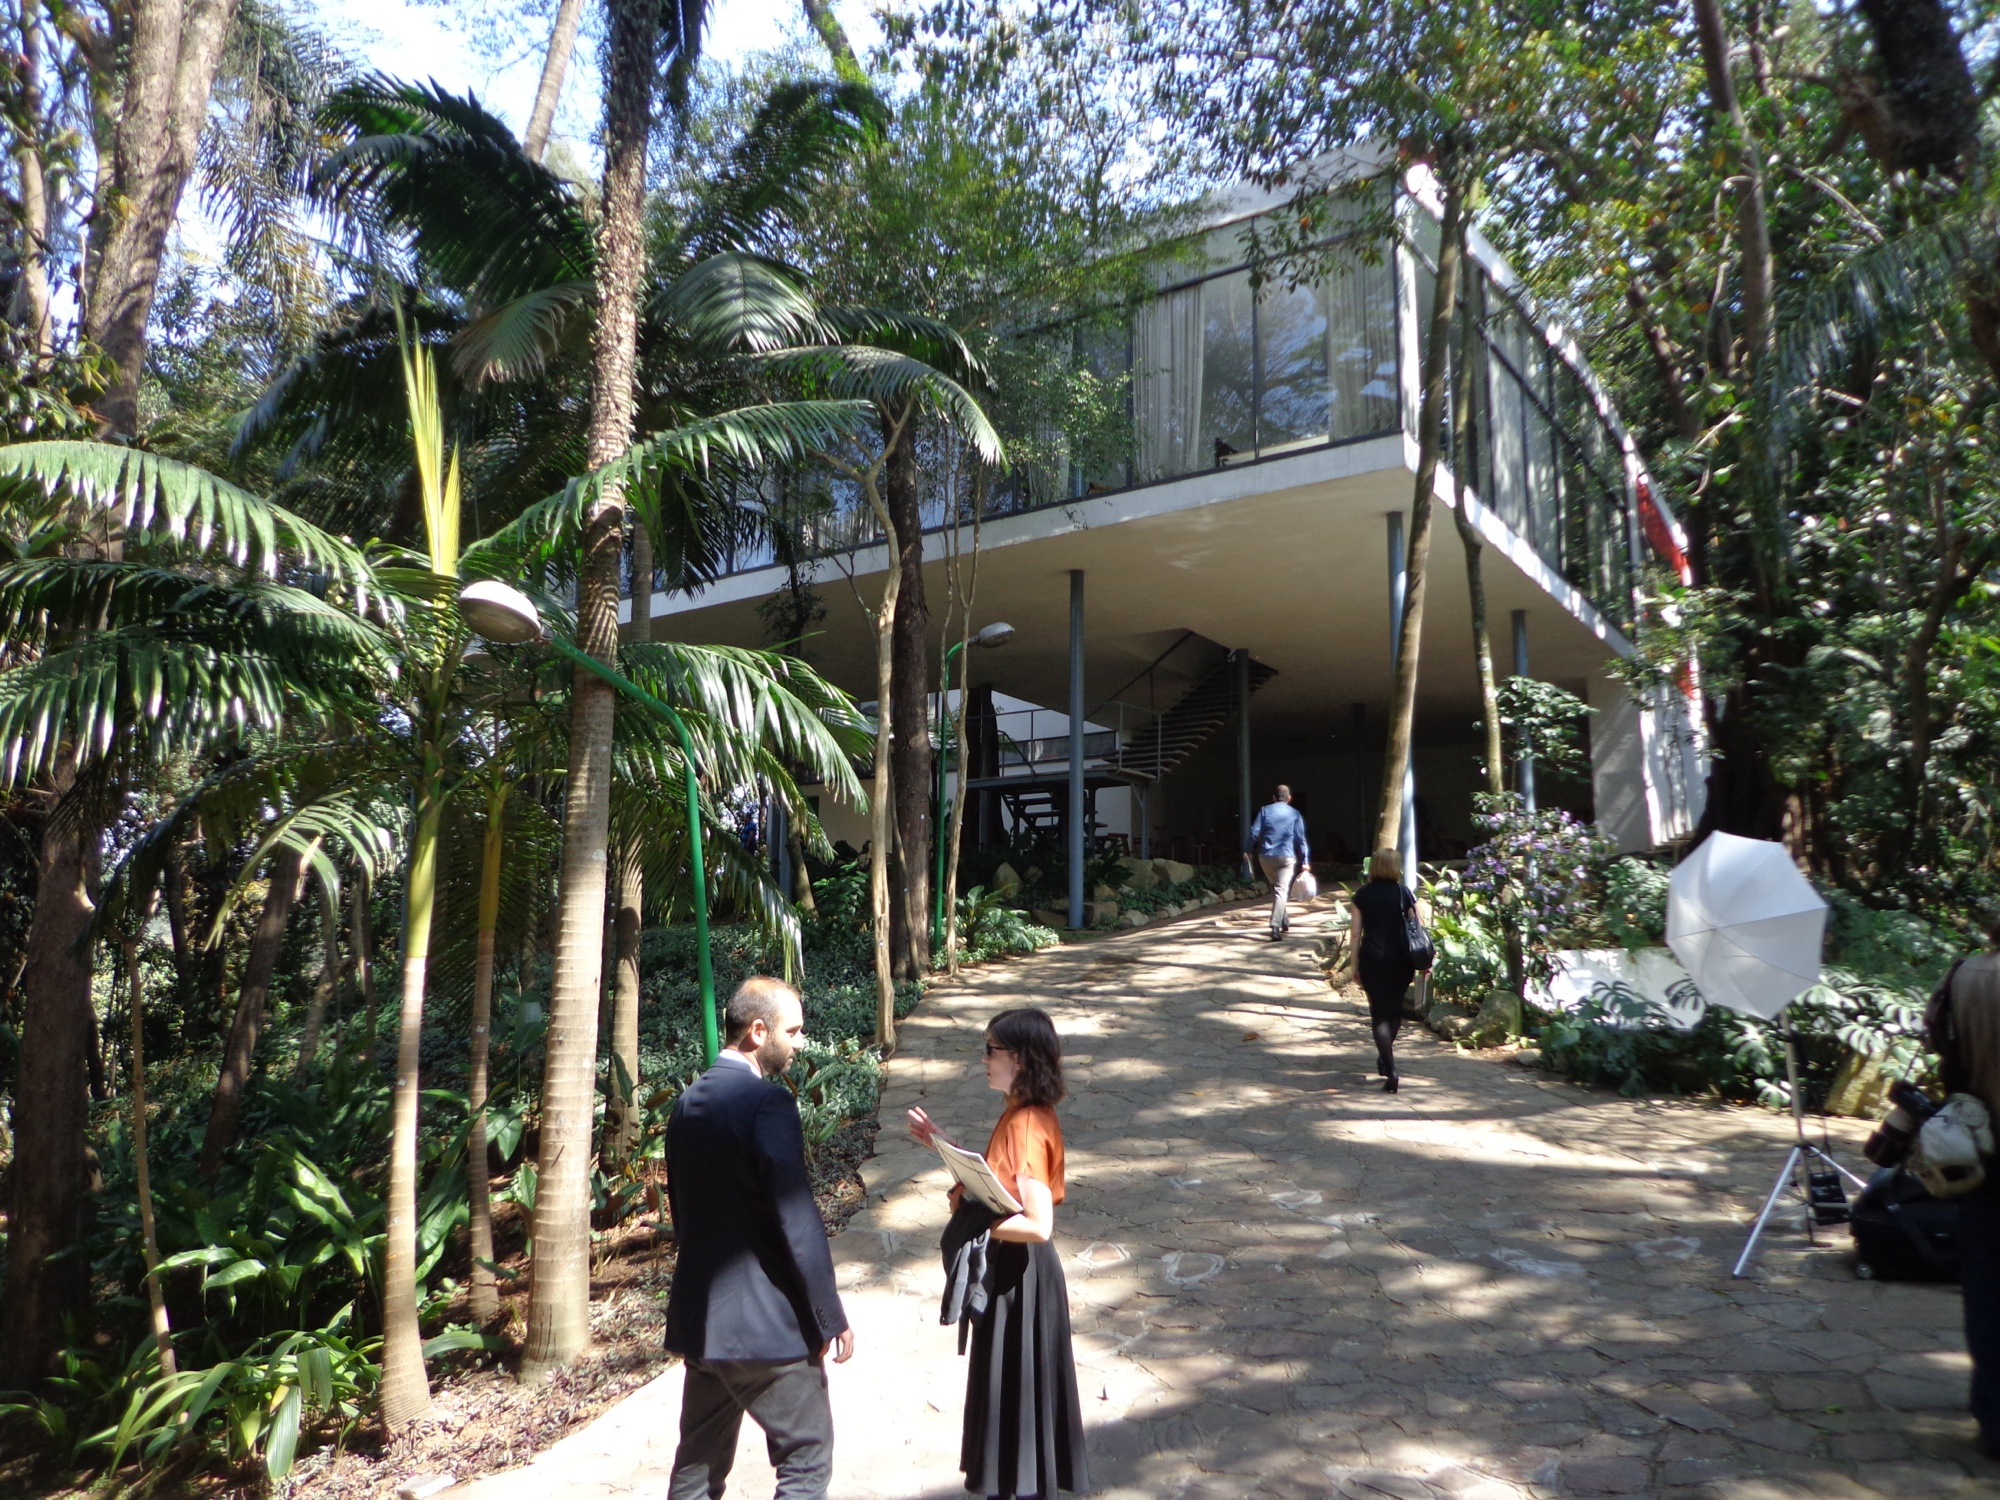 Claire rigby visits the stunning casa de vidro one of many modernist